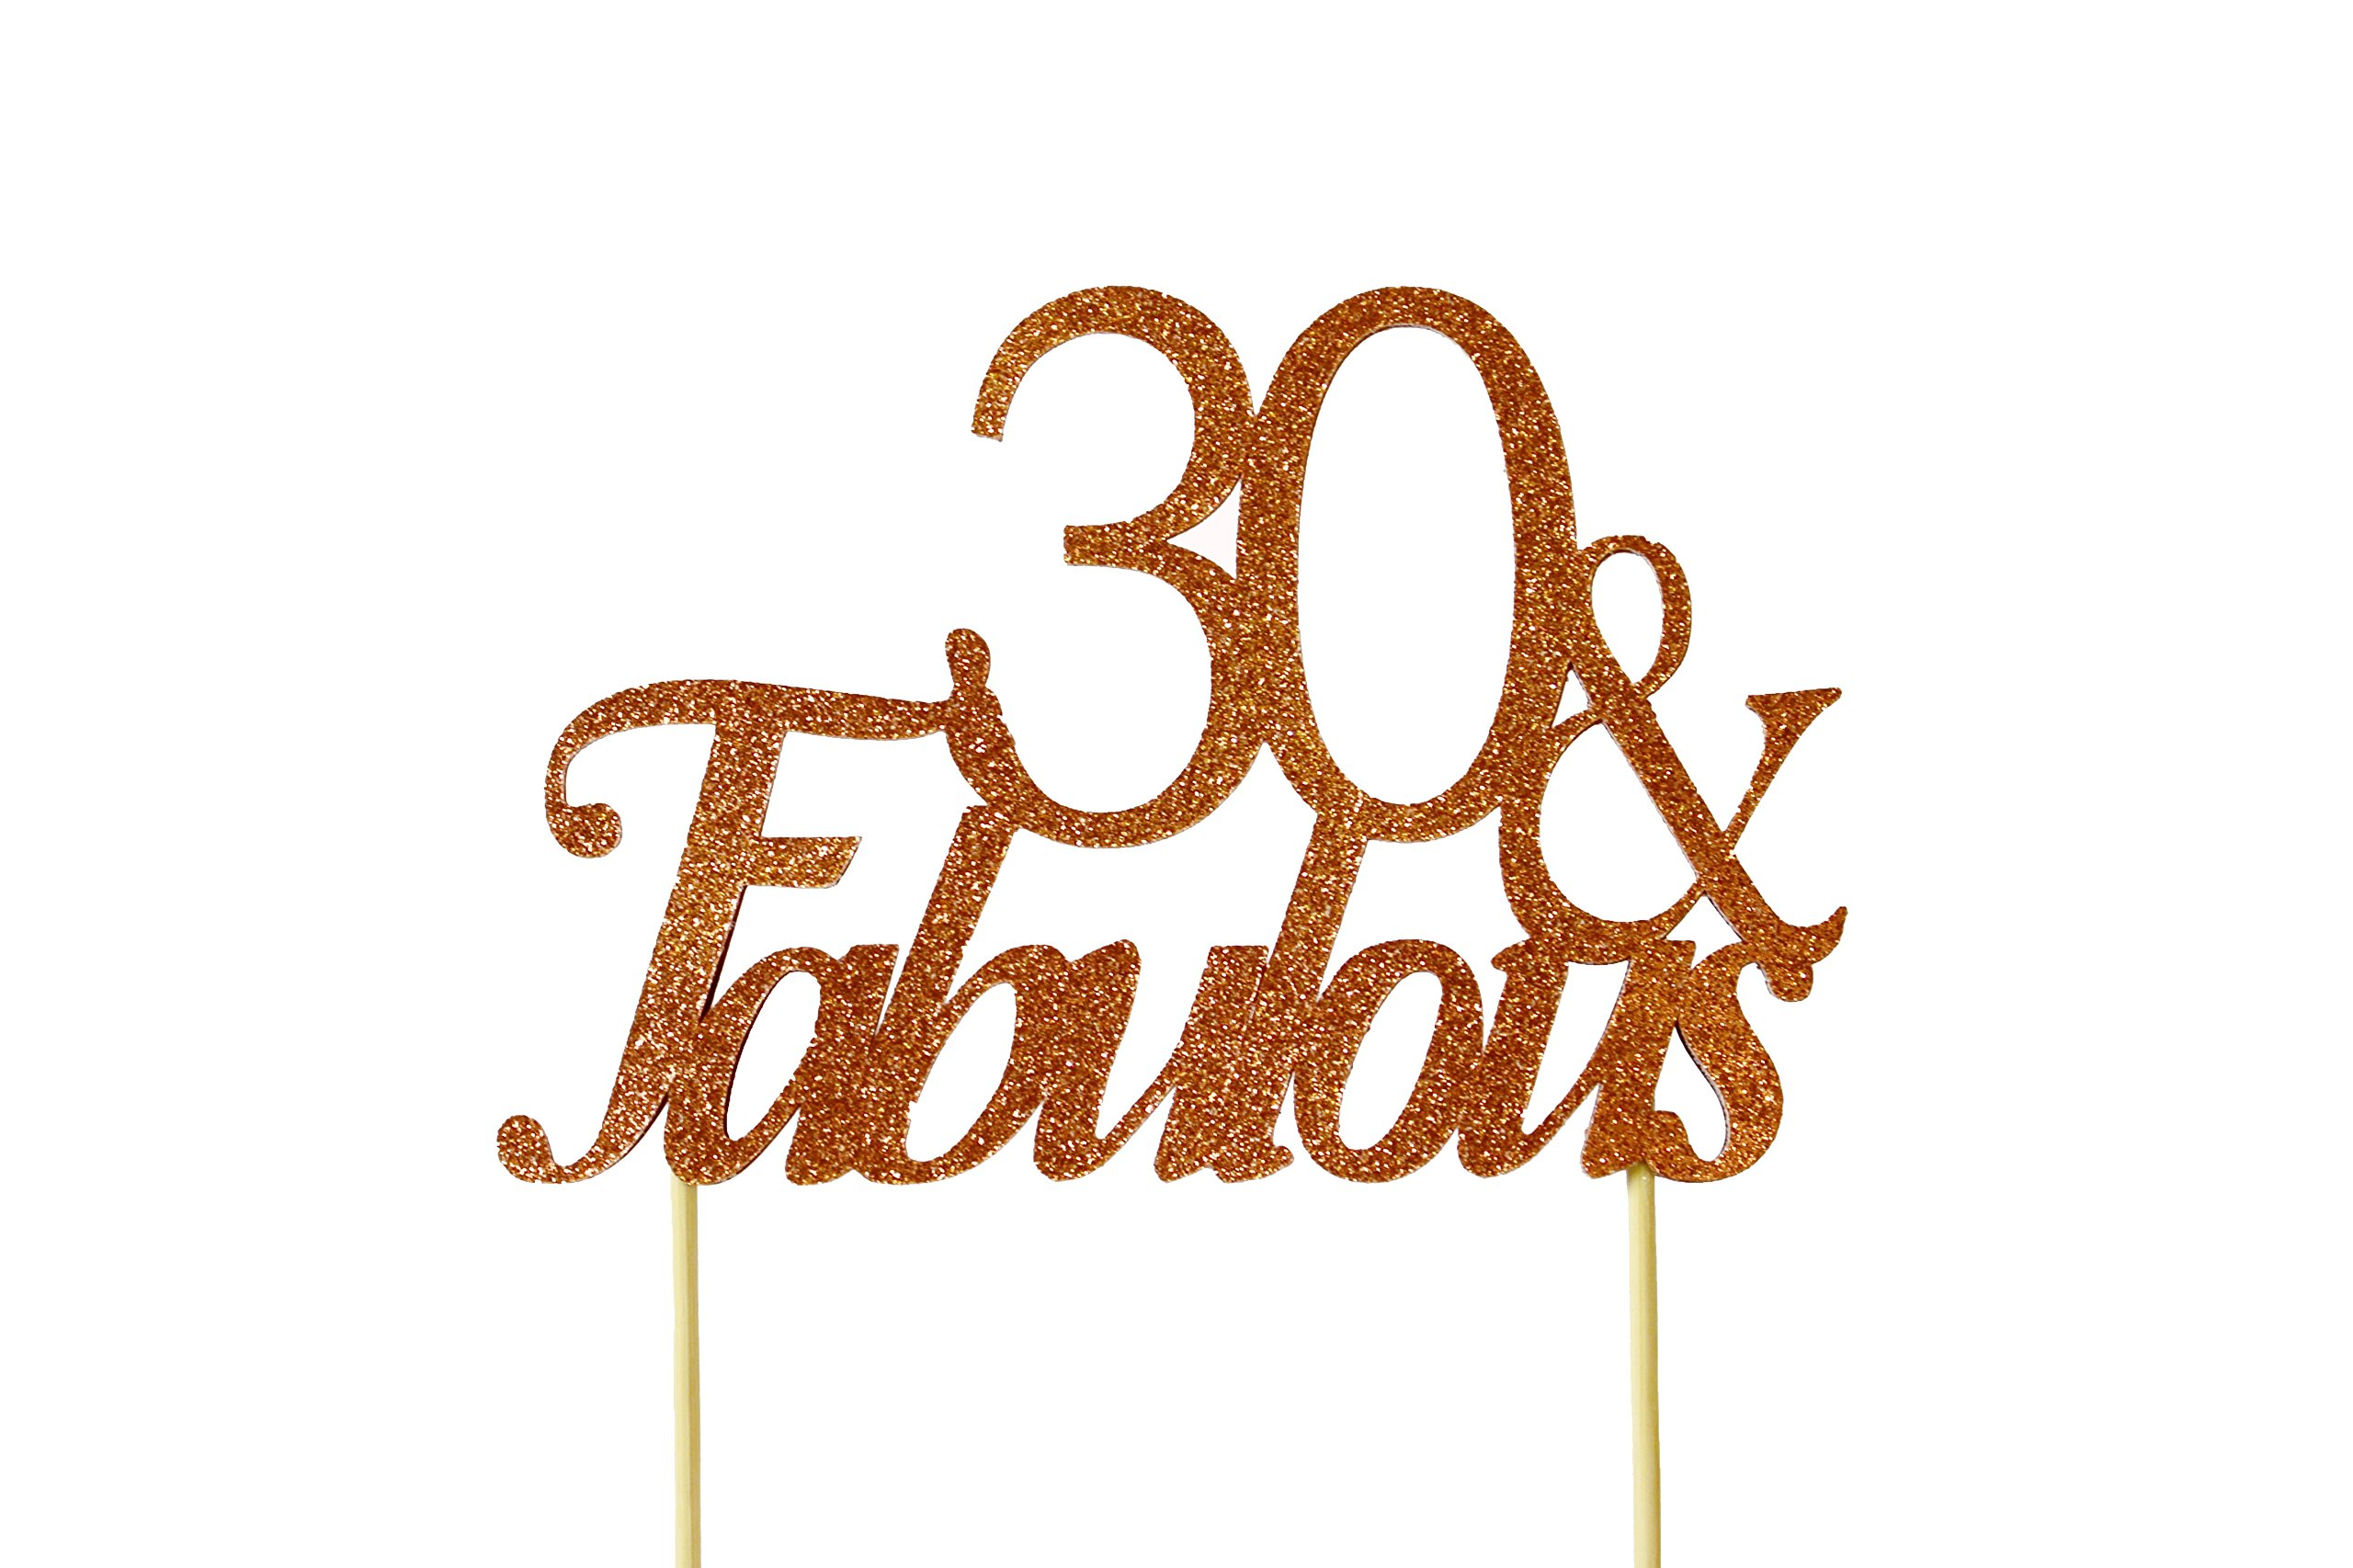 All About Details Copper 30-&-fabulous Cake Topper